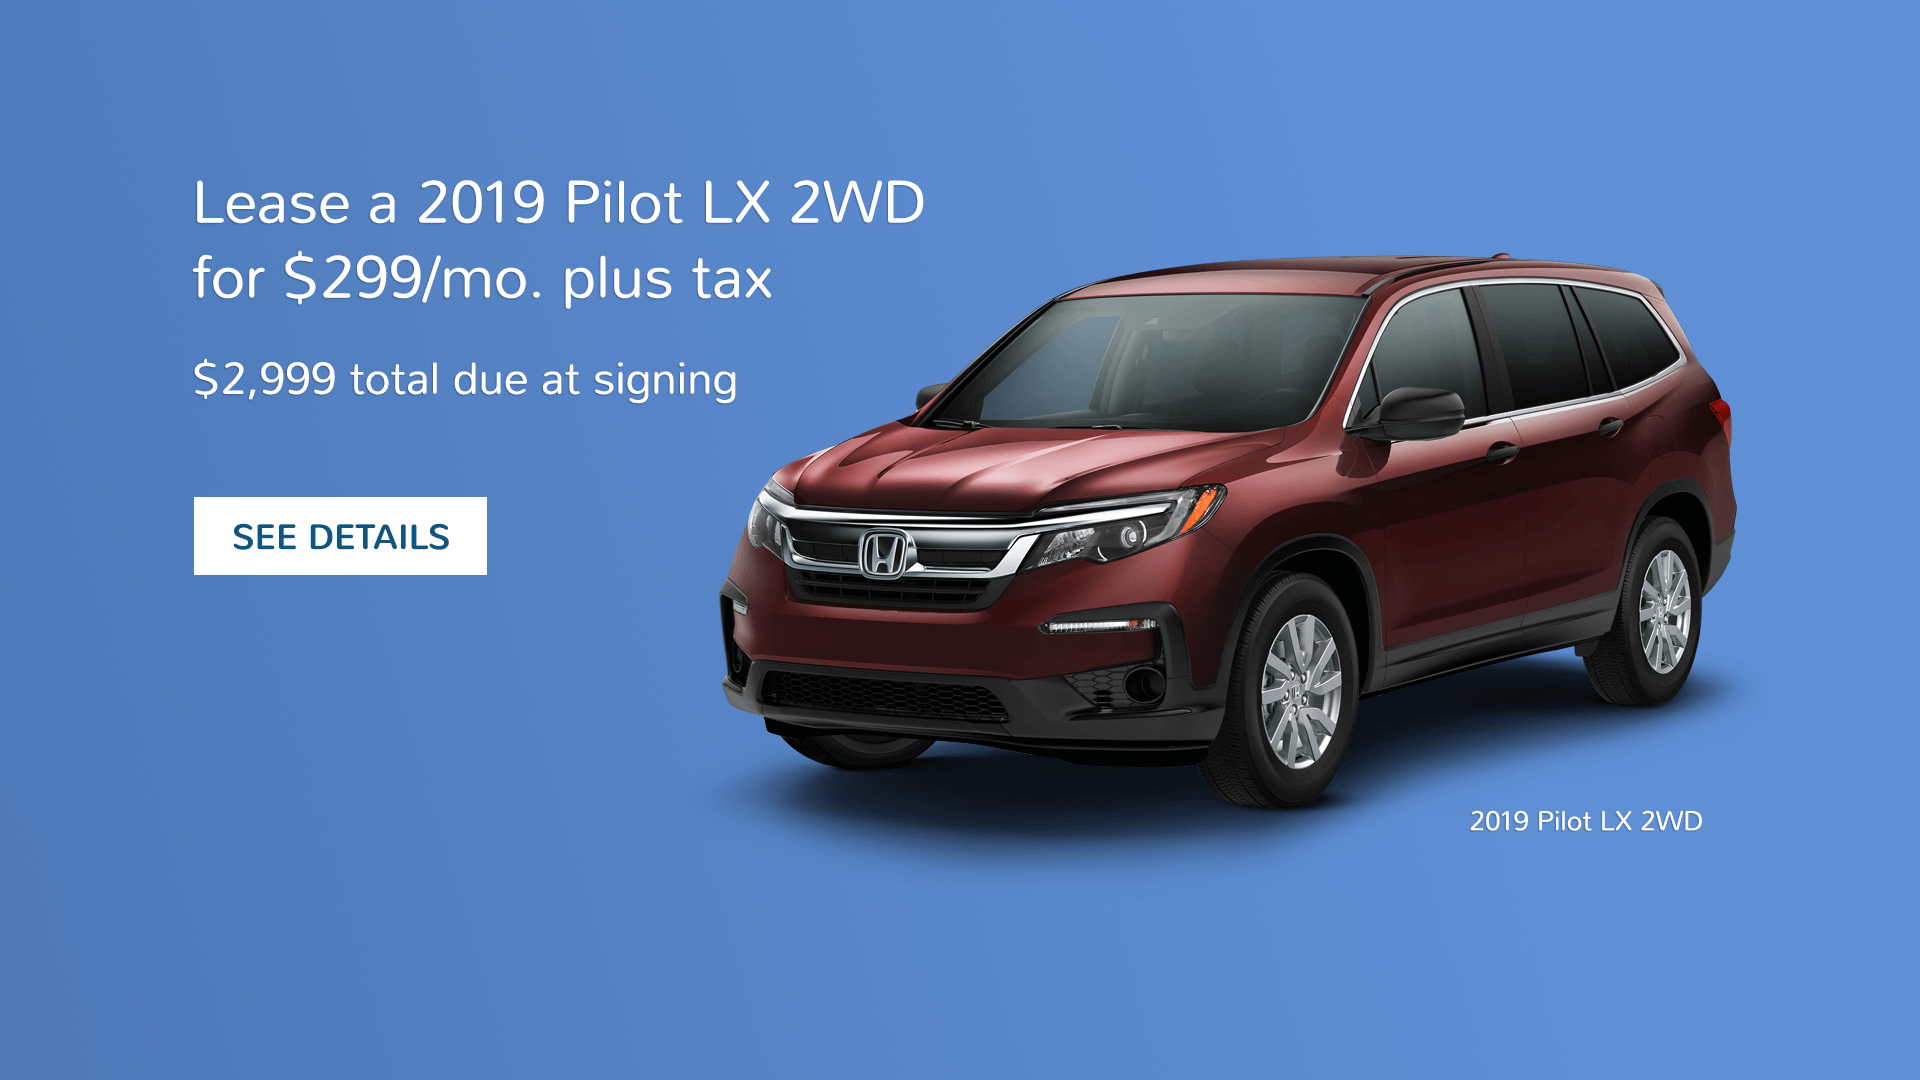 North Texas Honda Dealers 2019 Pilot Lease Offer